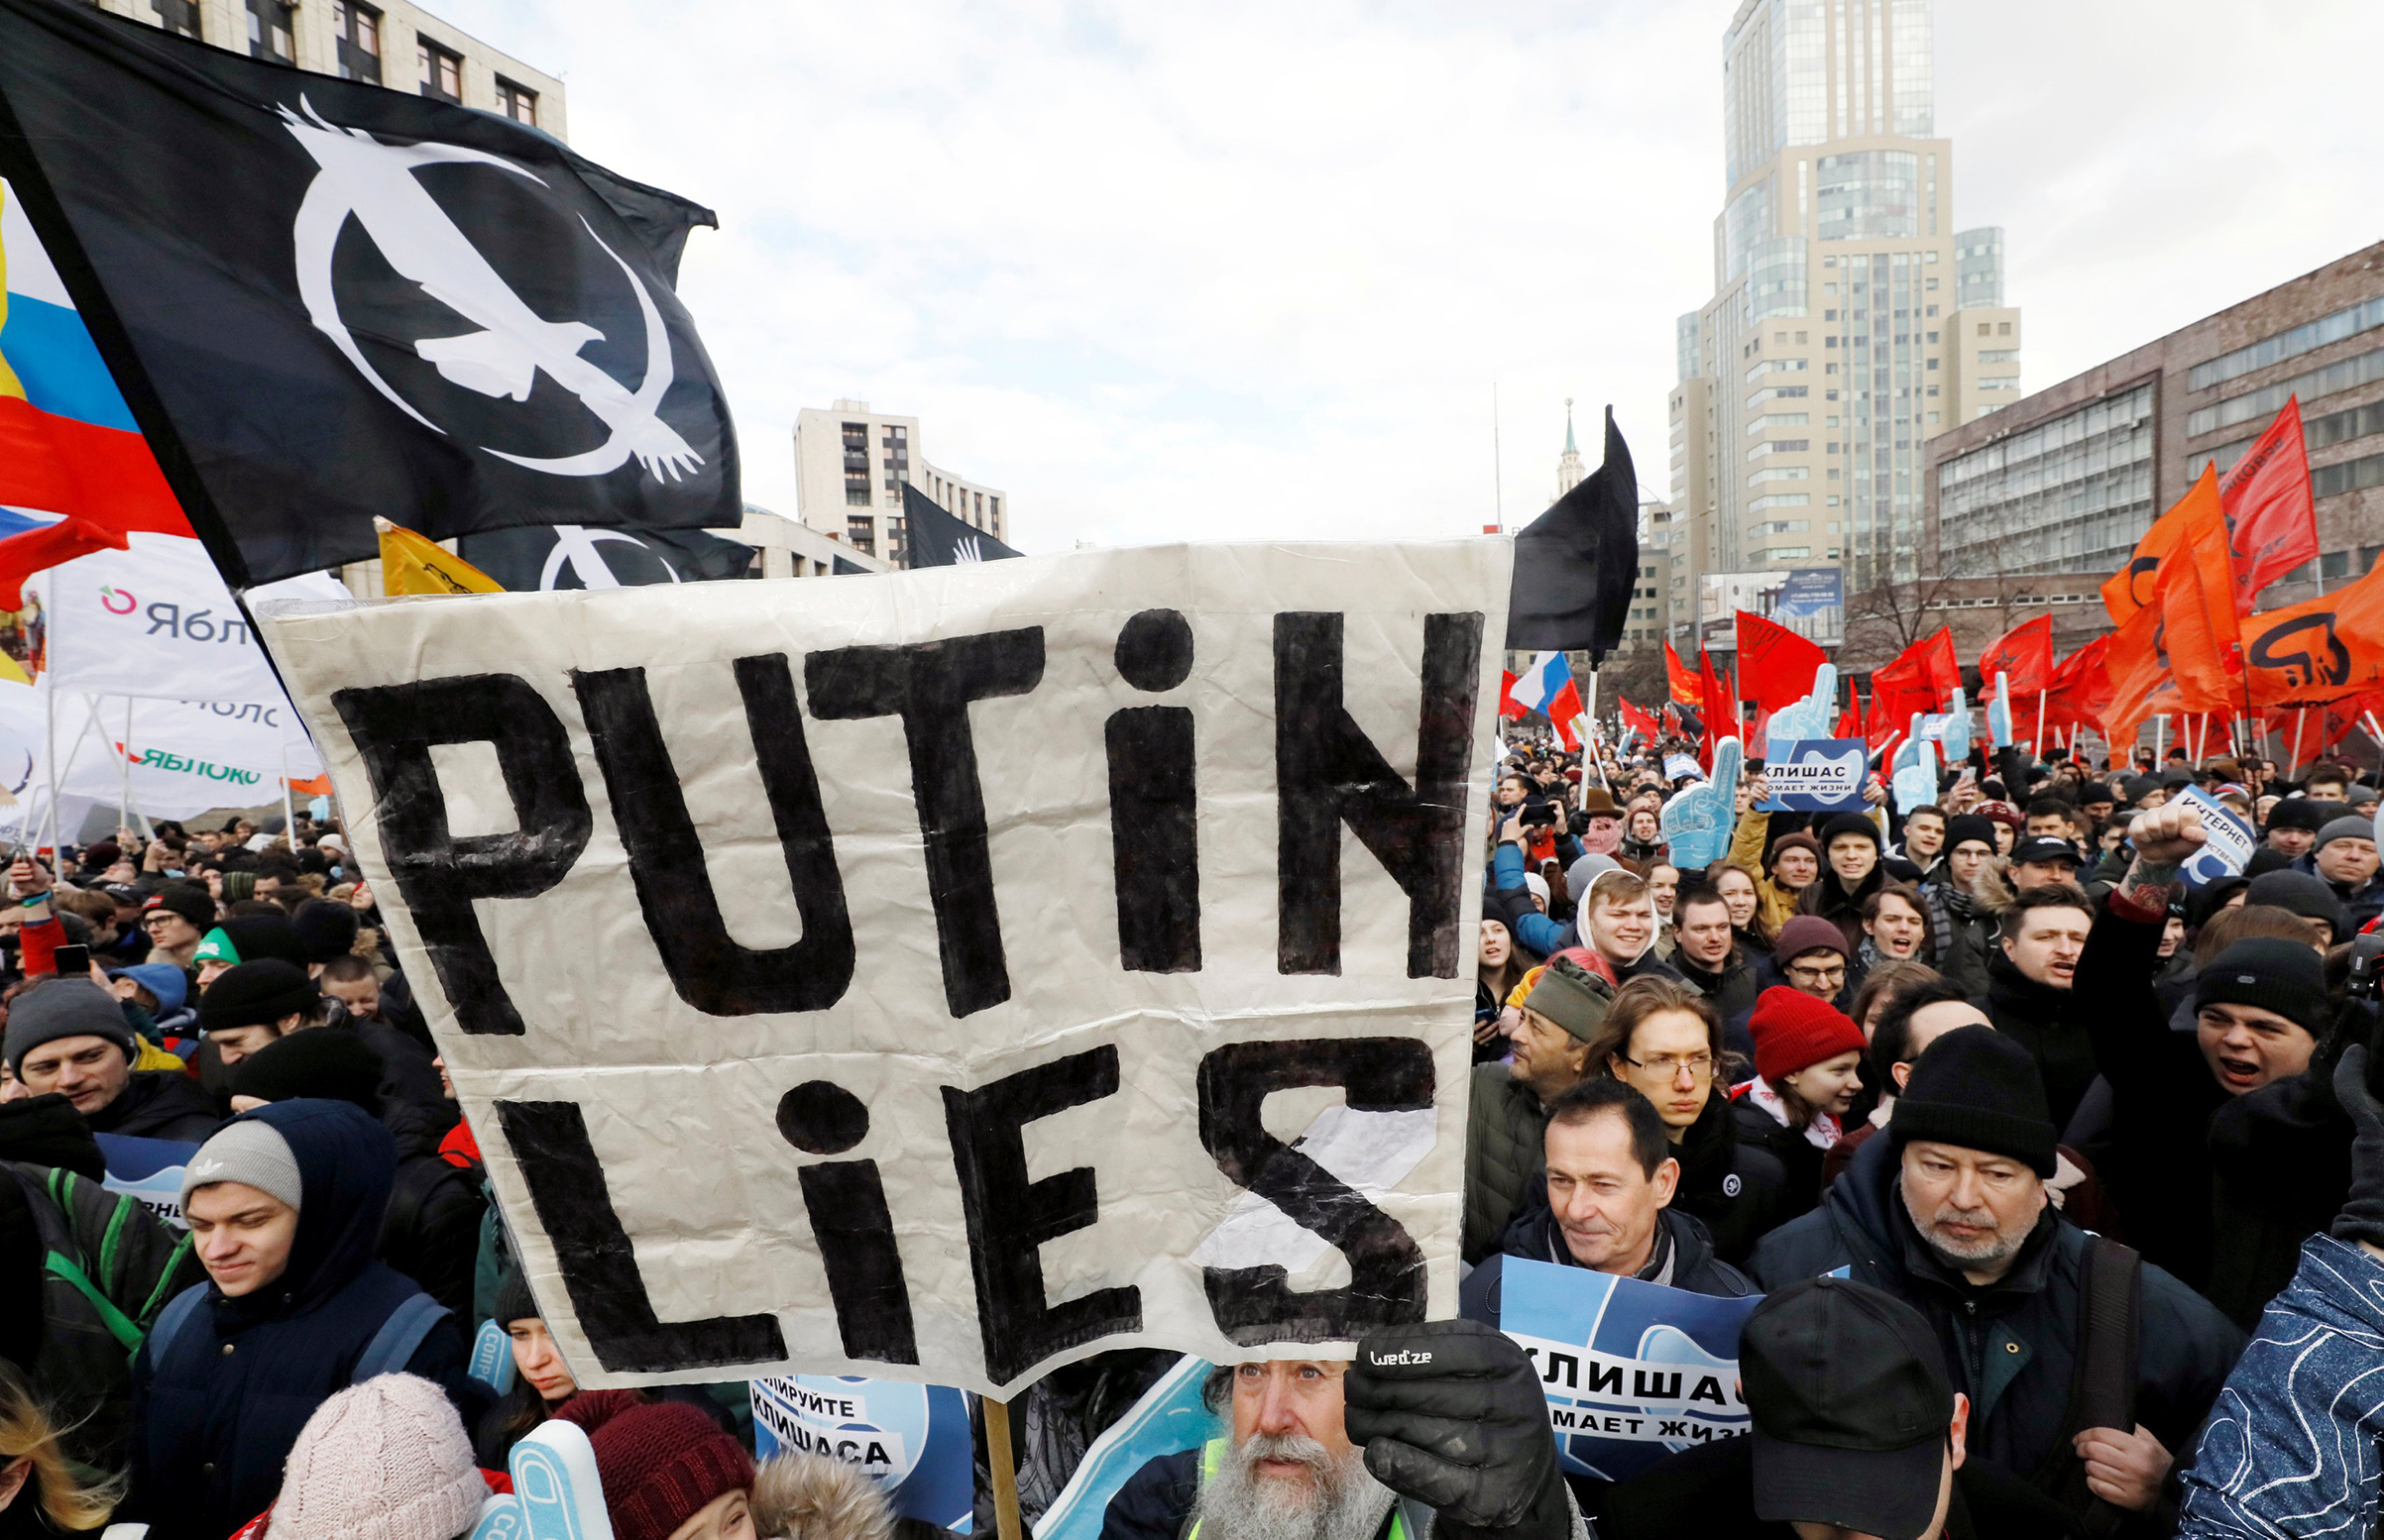 Russians protest against tightening state control over the internet in Moscow on March 10.